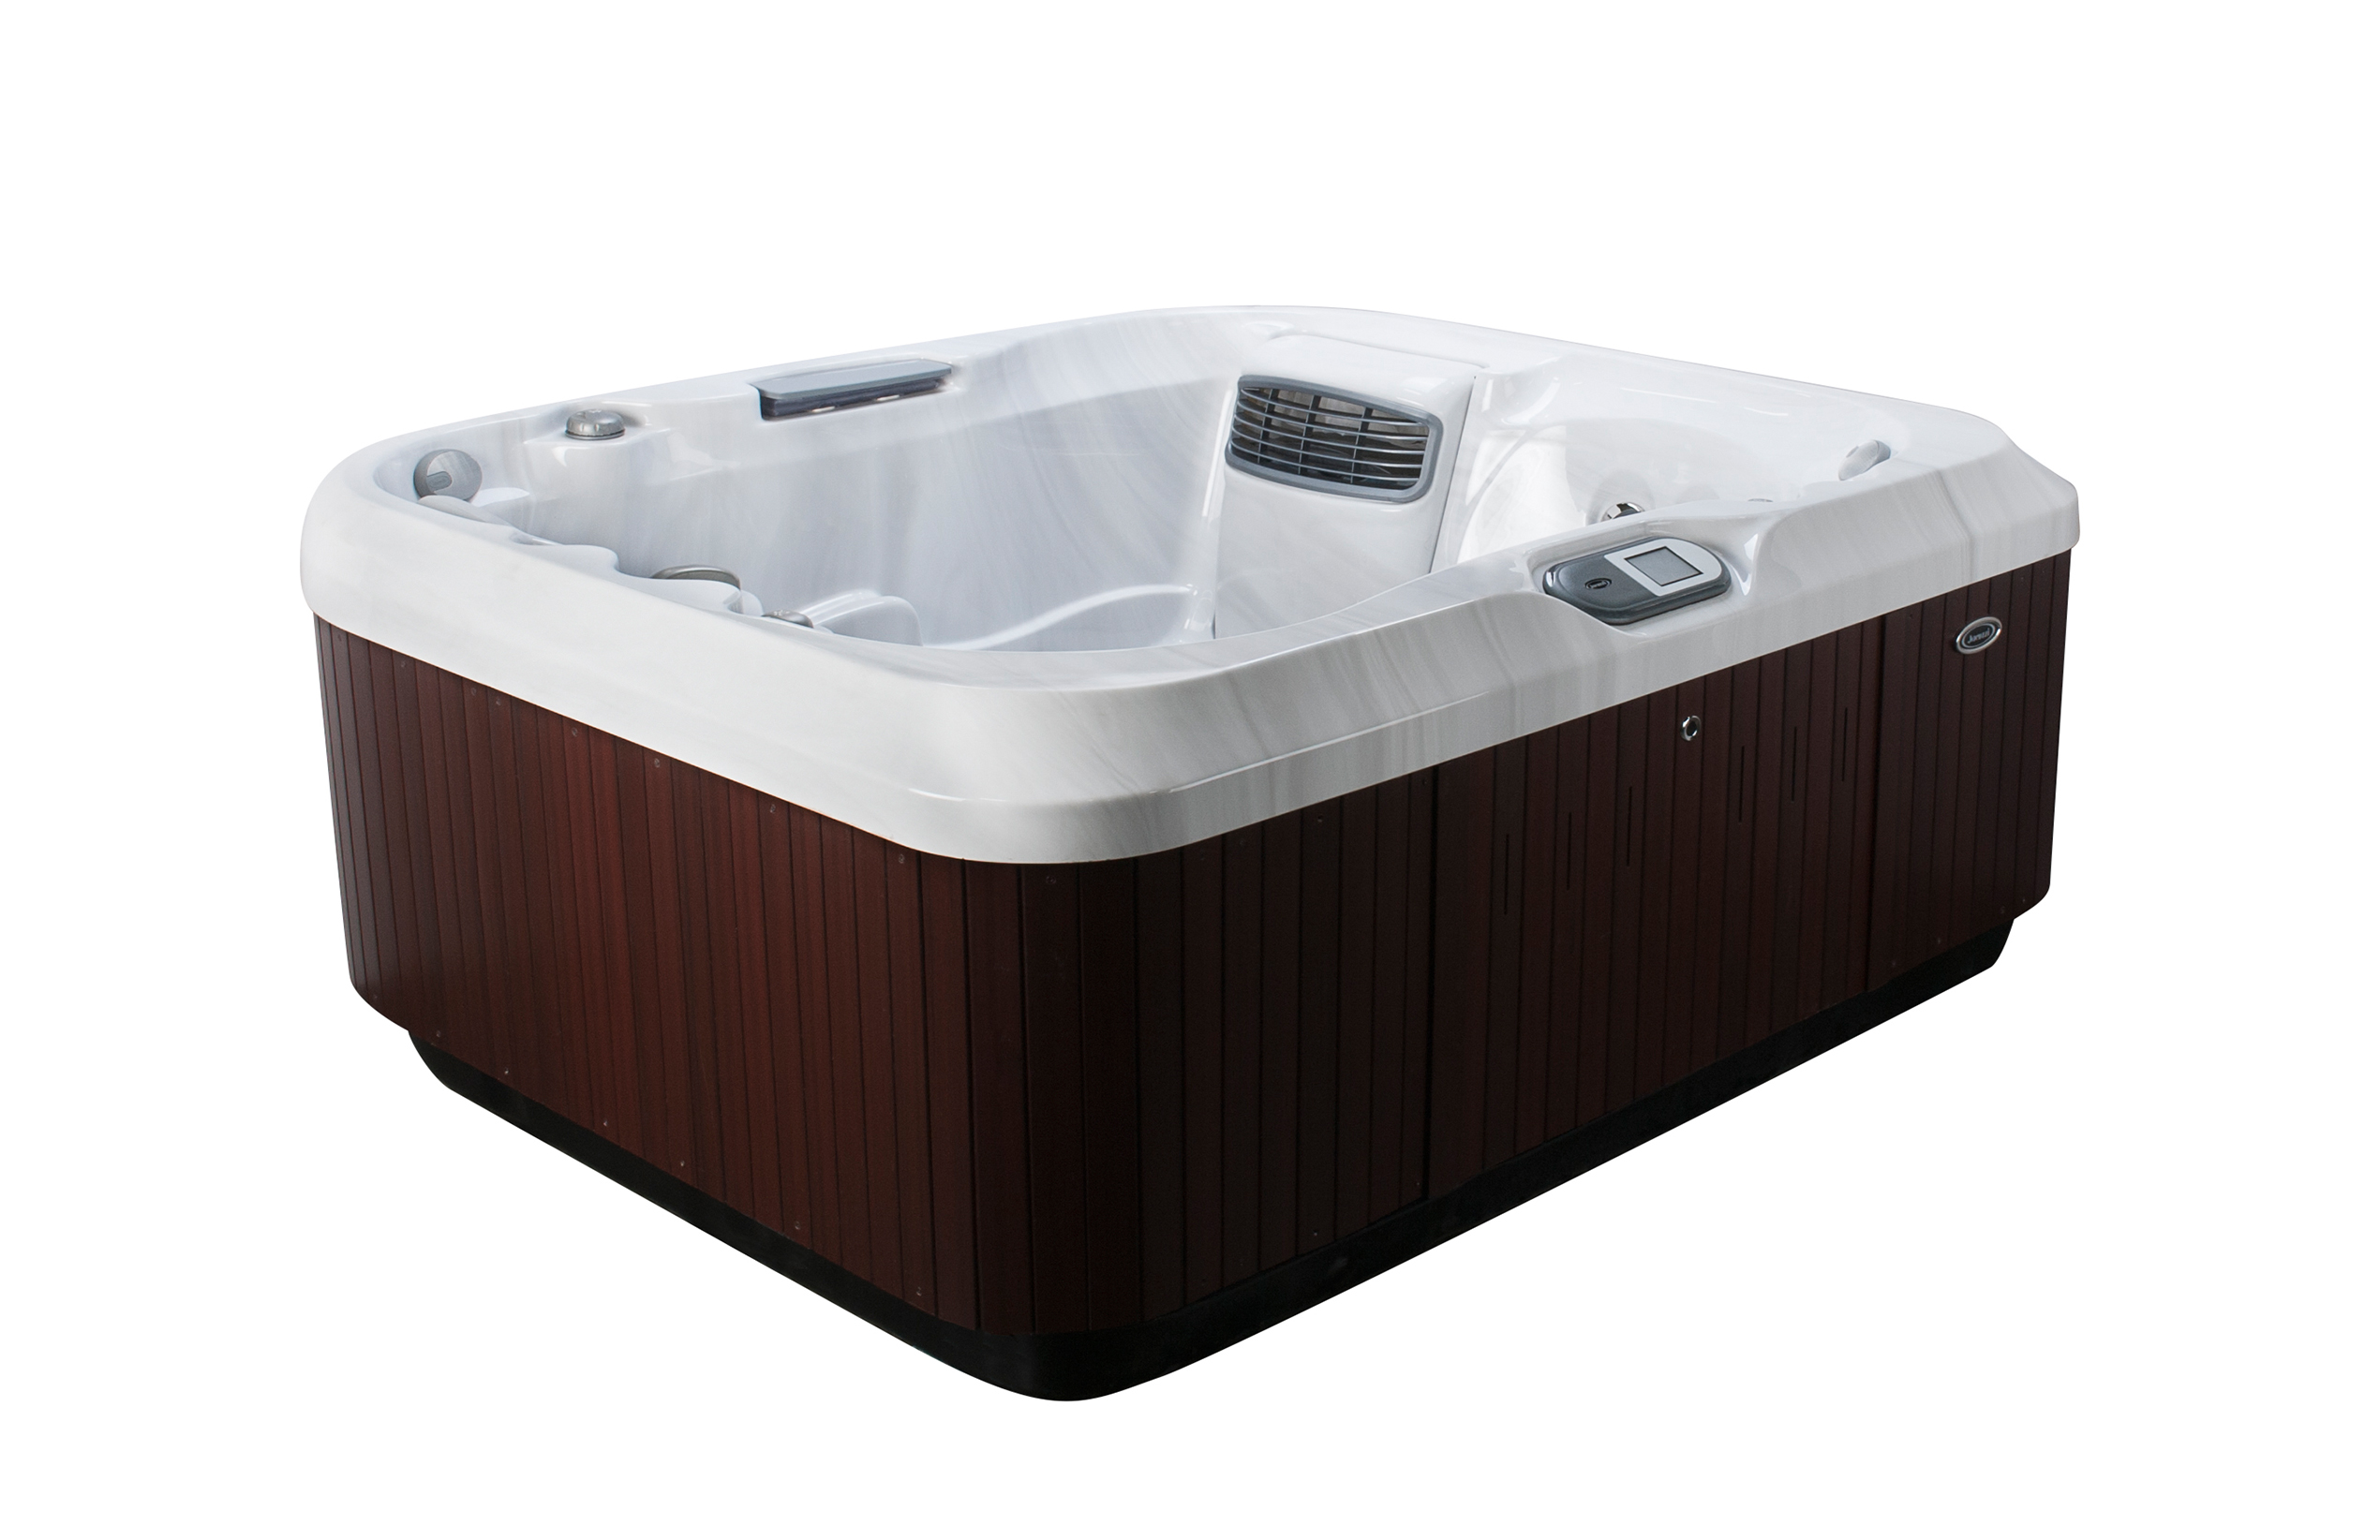 Jacuzzi Pool Pumps Jacuzzi J 415 3 Person Hot Tub Ultra Modern Pool And Patio